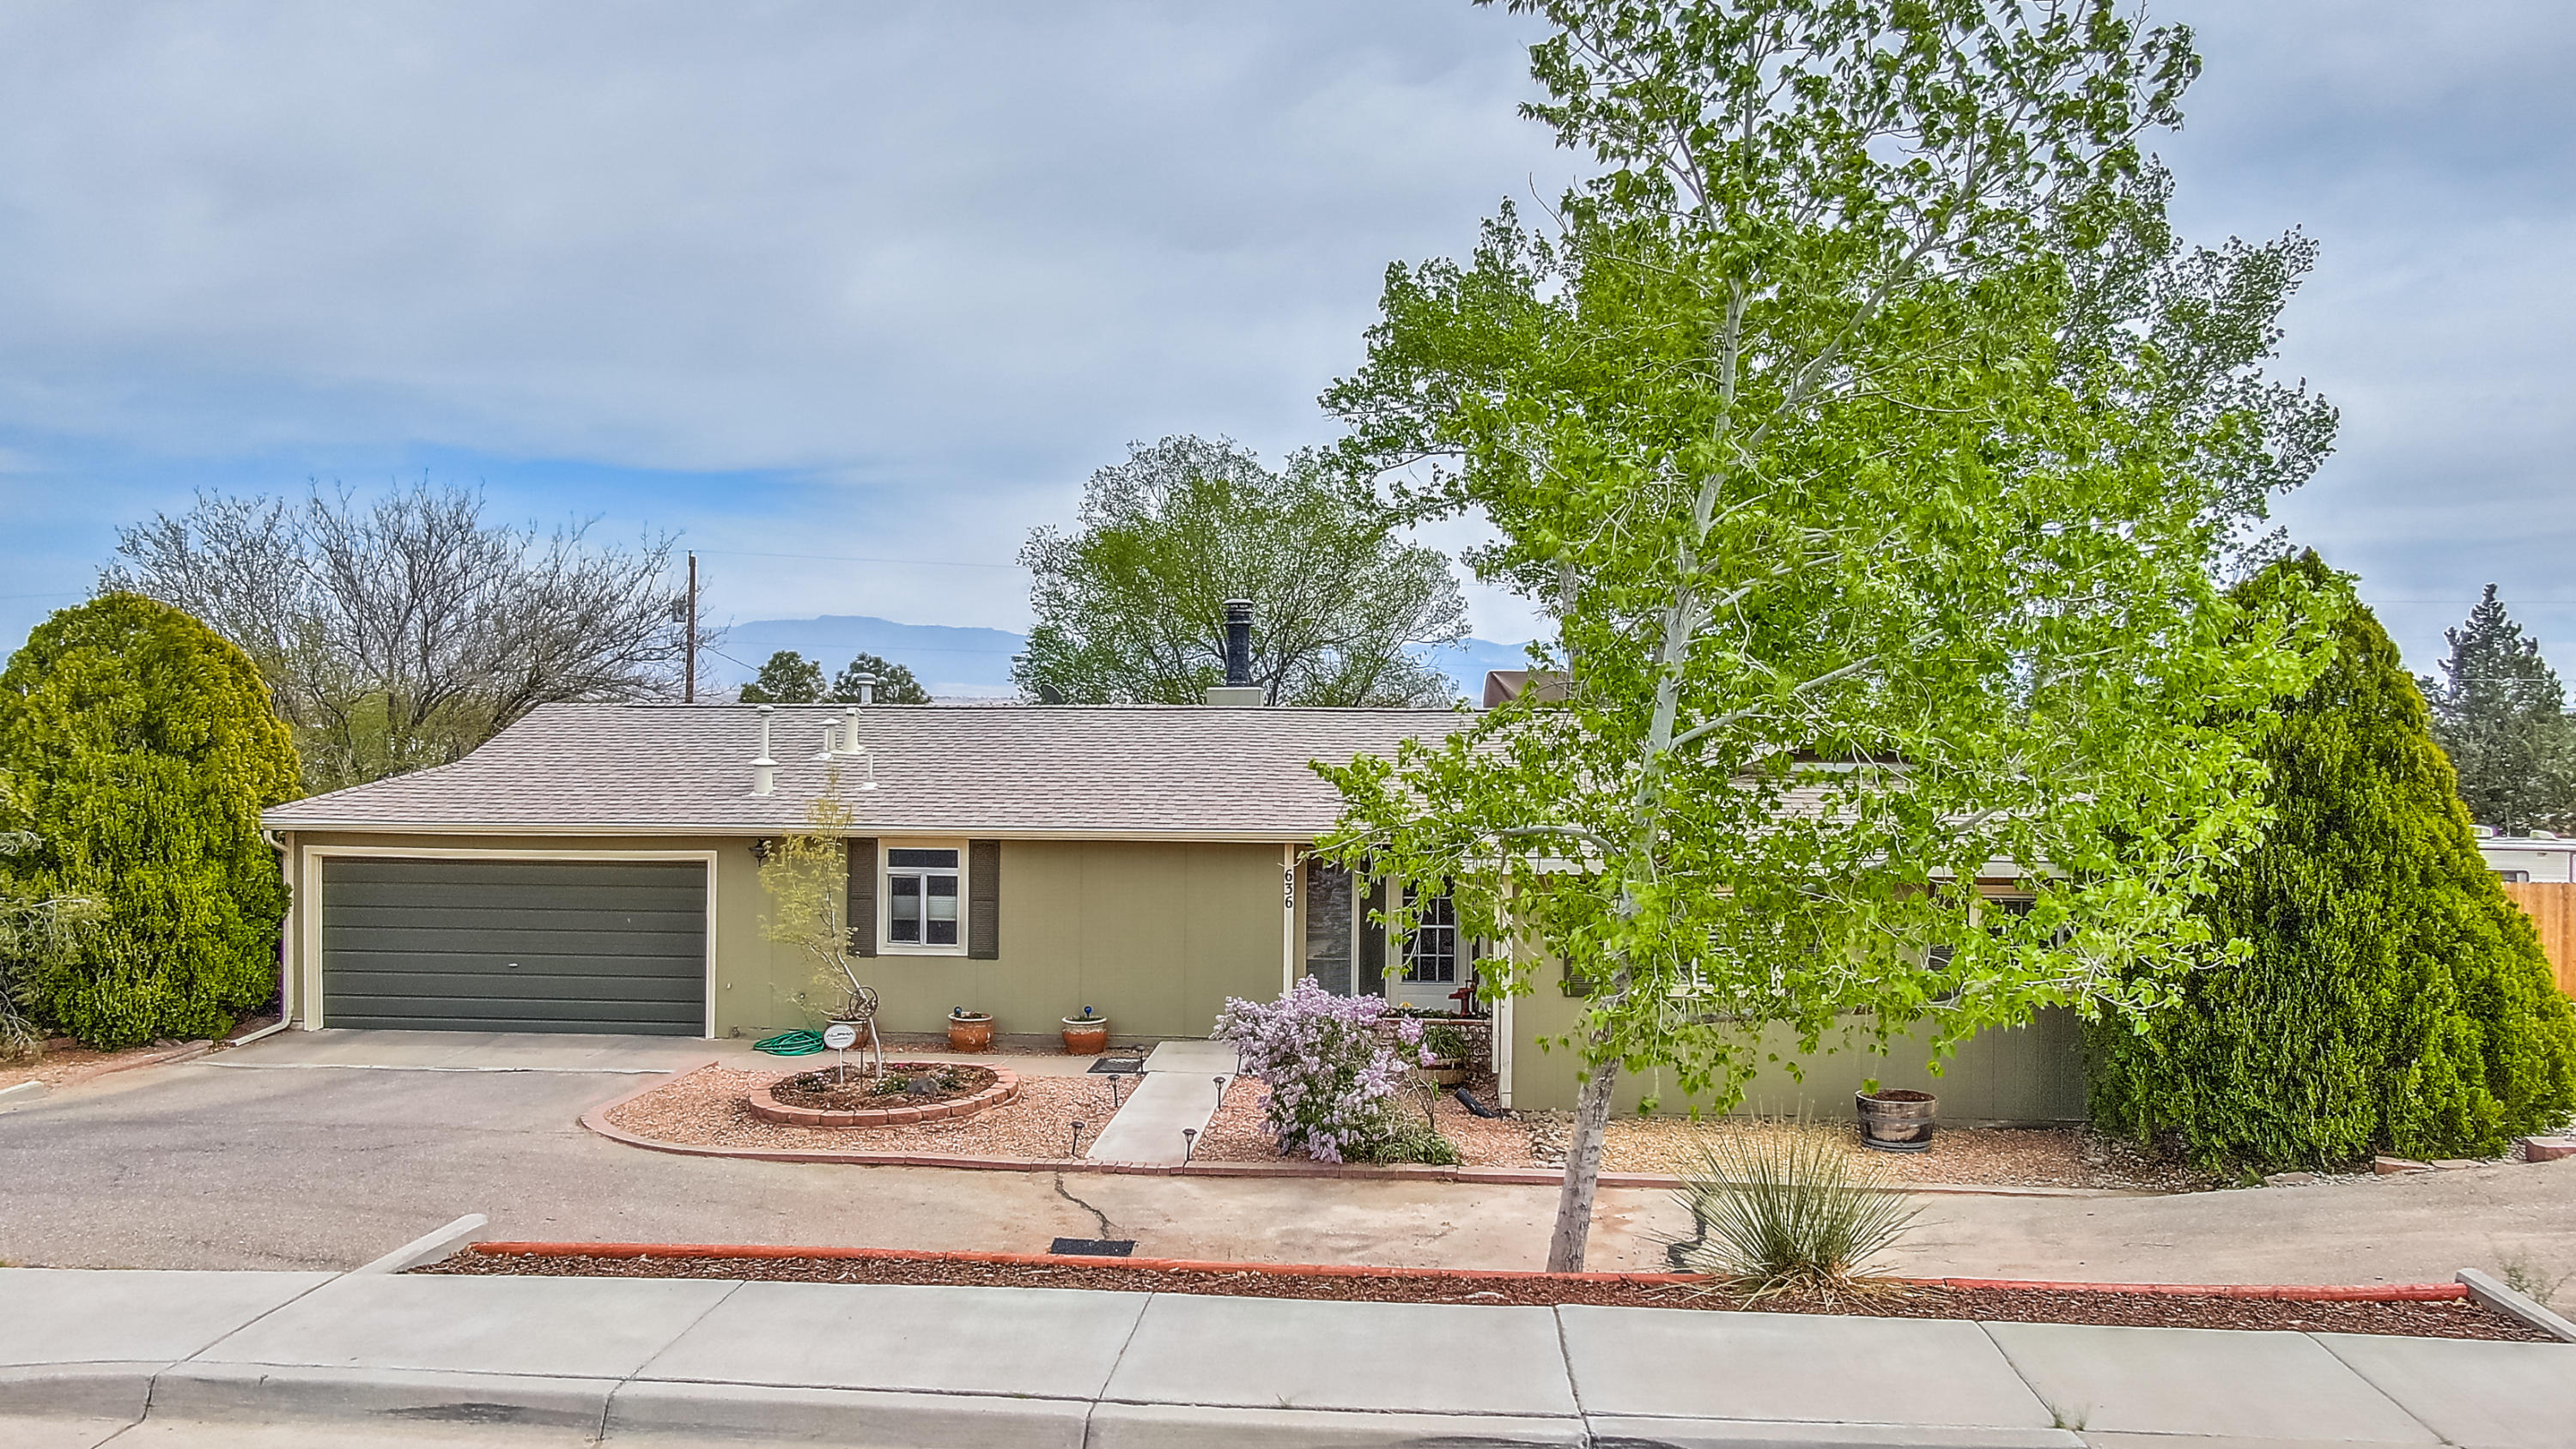 Showings Start Thursday May 6!Beautifully remodeled one story ranch style home on just over 1/2 acre landscaped.  Move in ready. Remodeled open plan kitchen with wine cooler, coffee bar, & pot filler faucet with newer flooring-tile, hardwood and pergo. Remodeled master bathroom 2019 with tub and separate shower. Backyard is great for entertaining with a custom built wood fire pizza oven, gazebo, firepit and large patio.  Oversized family room.  Huge laundry room with lots of storage space. Area on side of home large enough to park RV and boat. Roof and gutter new in 2014, furnace 2017 and Cooler 2015.  Easy access to the freeway, shopping and restaurants. Don't miss this Wonderful Home!